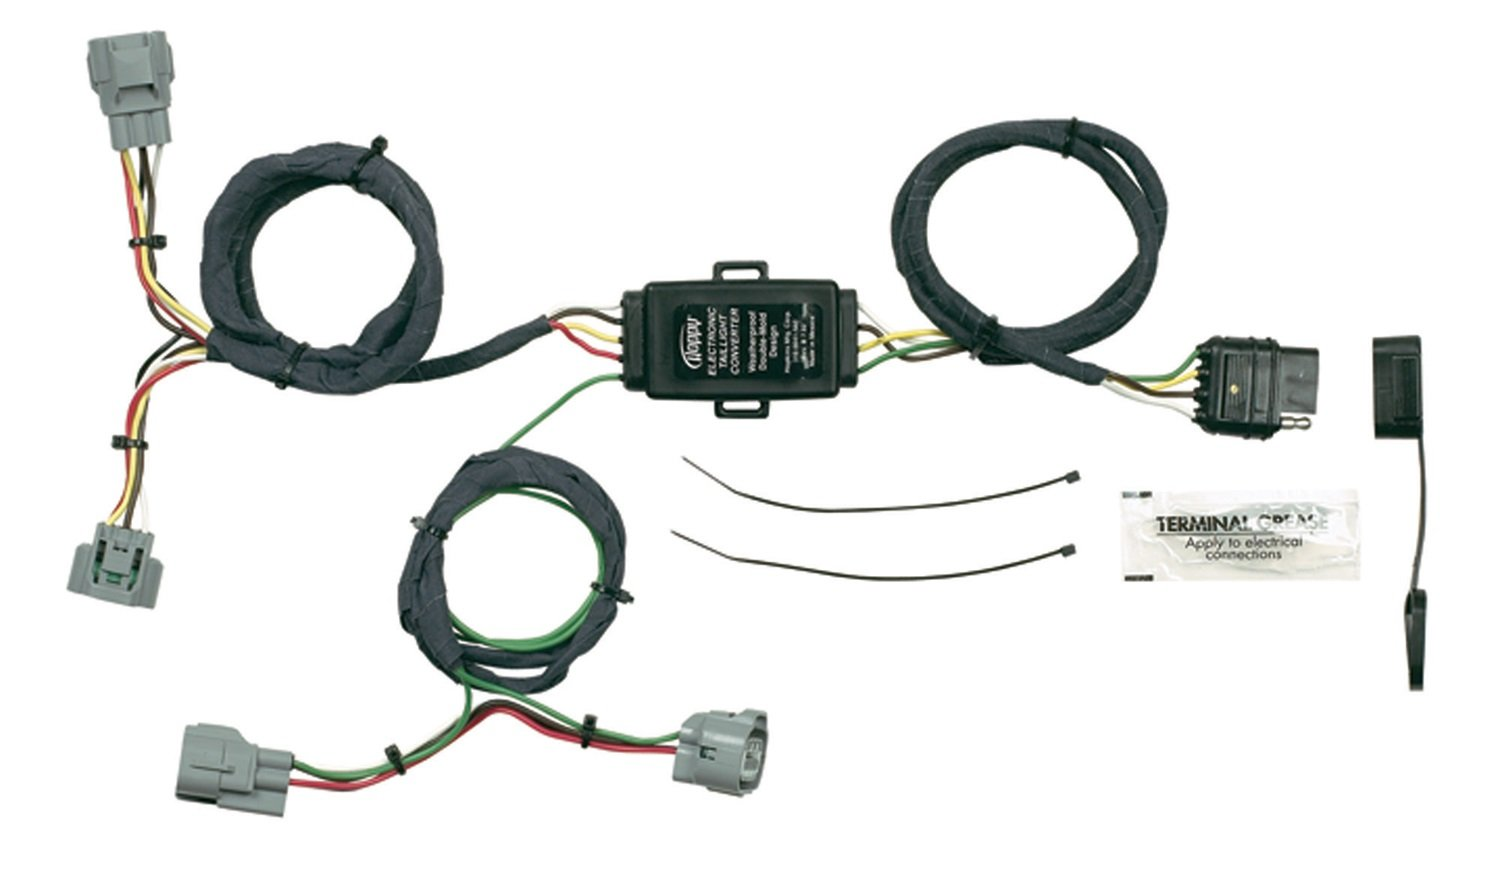 61J3Pn4wzzL._SL1500_ amazon com hopkins 43355 plug in simple vehicle wiring kit on 43355 wiring harness